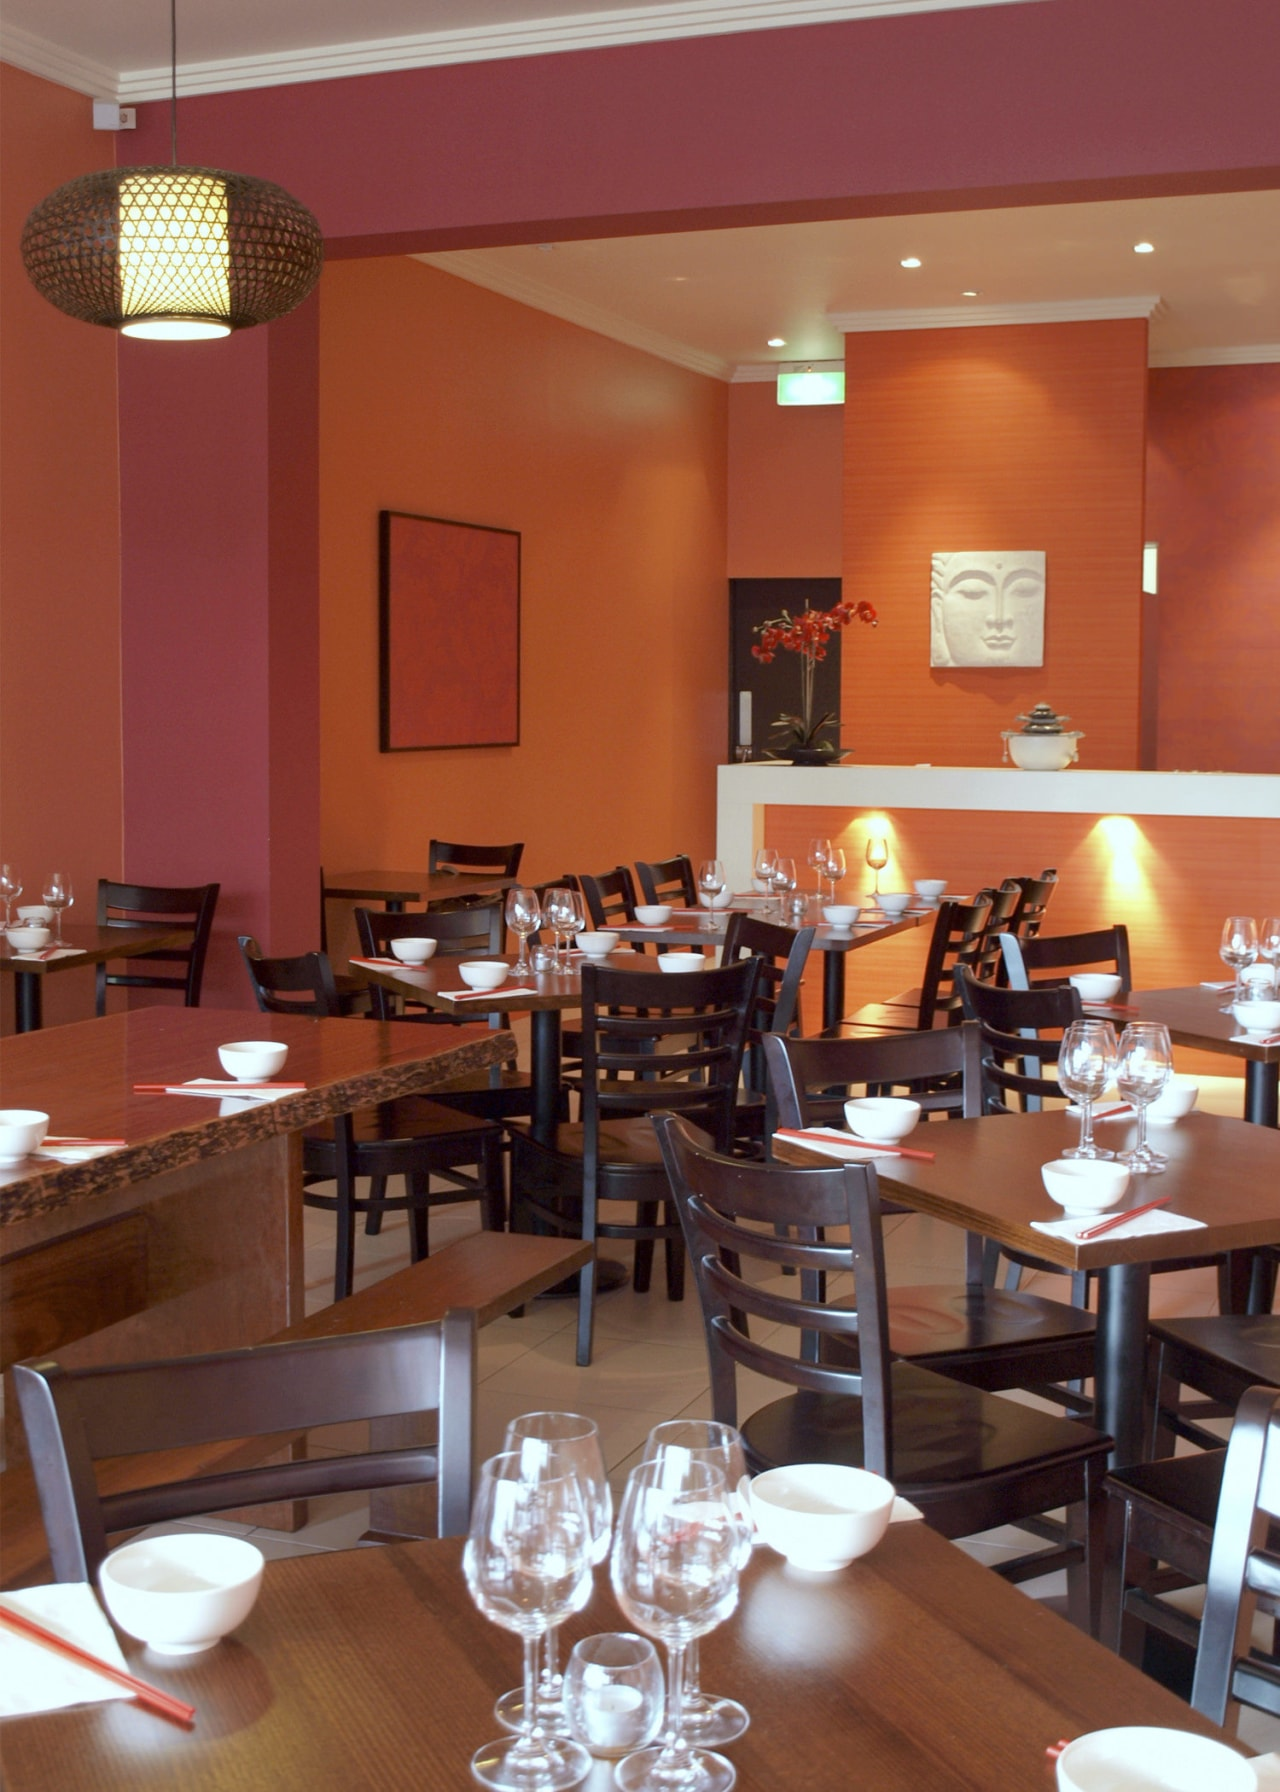 Resene provided the paints for this new Asian café, dining room, function hall, interior design, restaurant, table, red